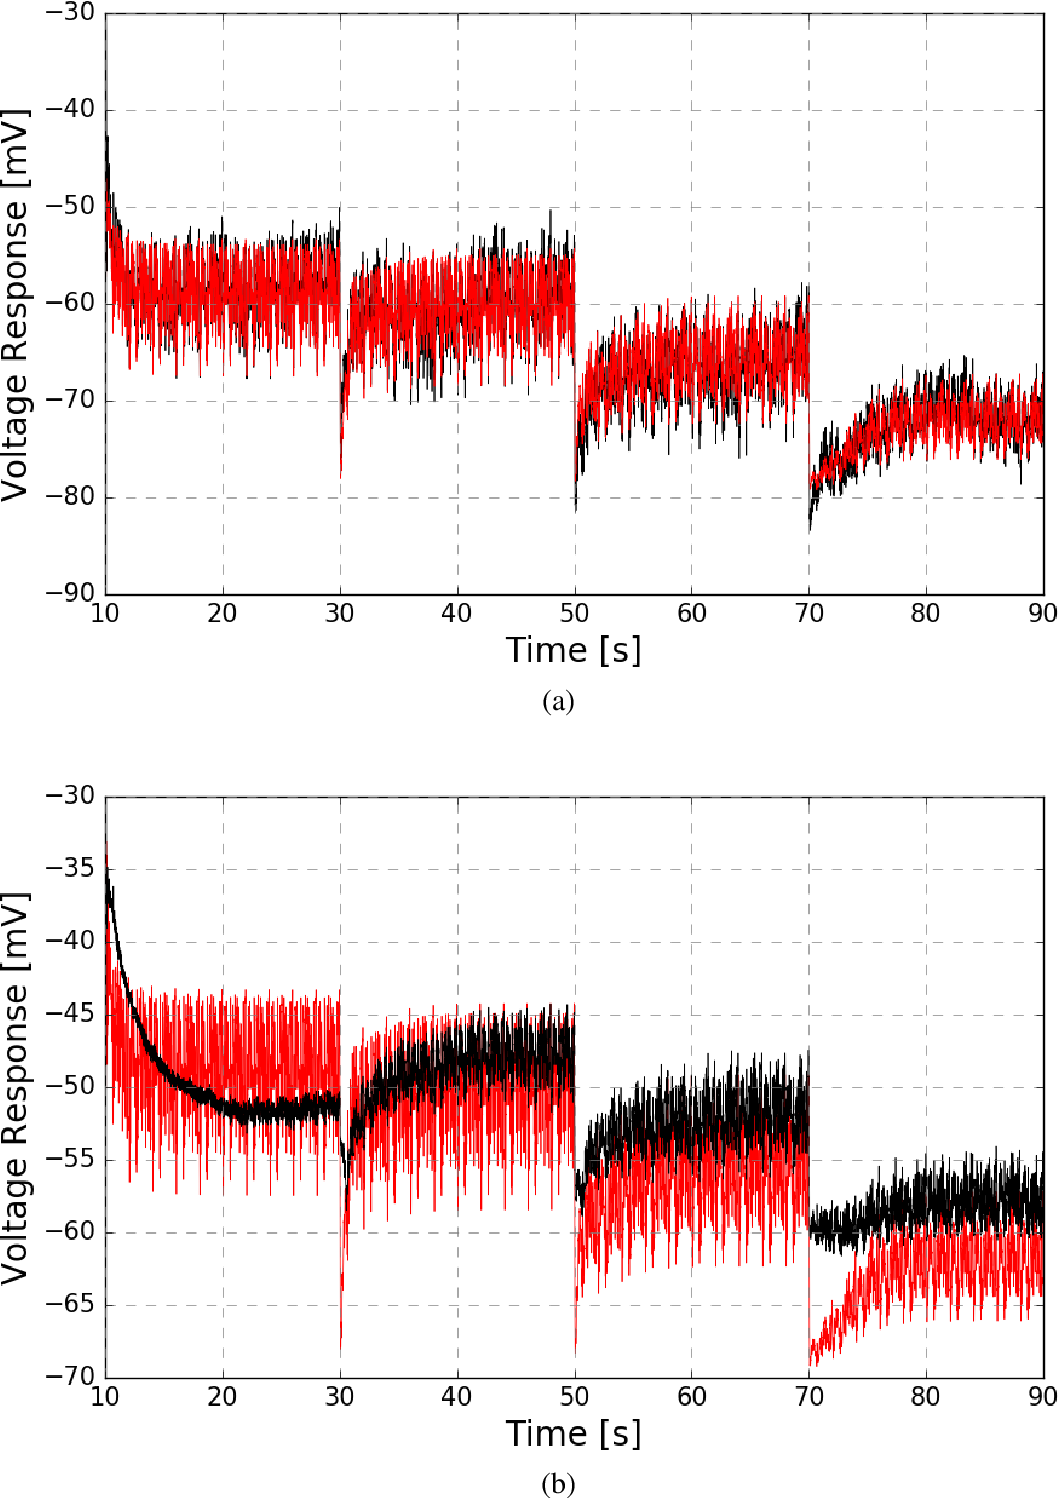 Fig. 4.2 Photoreceptor response to naturalistic stimuli shown in Fig. 2.5. (a) Comparison between recorded data and model response of the wild fly. The comparison for the mutant fly is shown in (b). Recorded data is shown in black and model responses are shown in red.